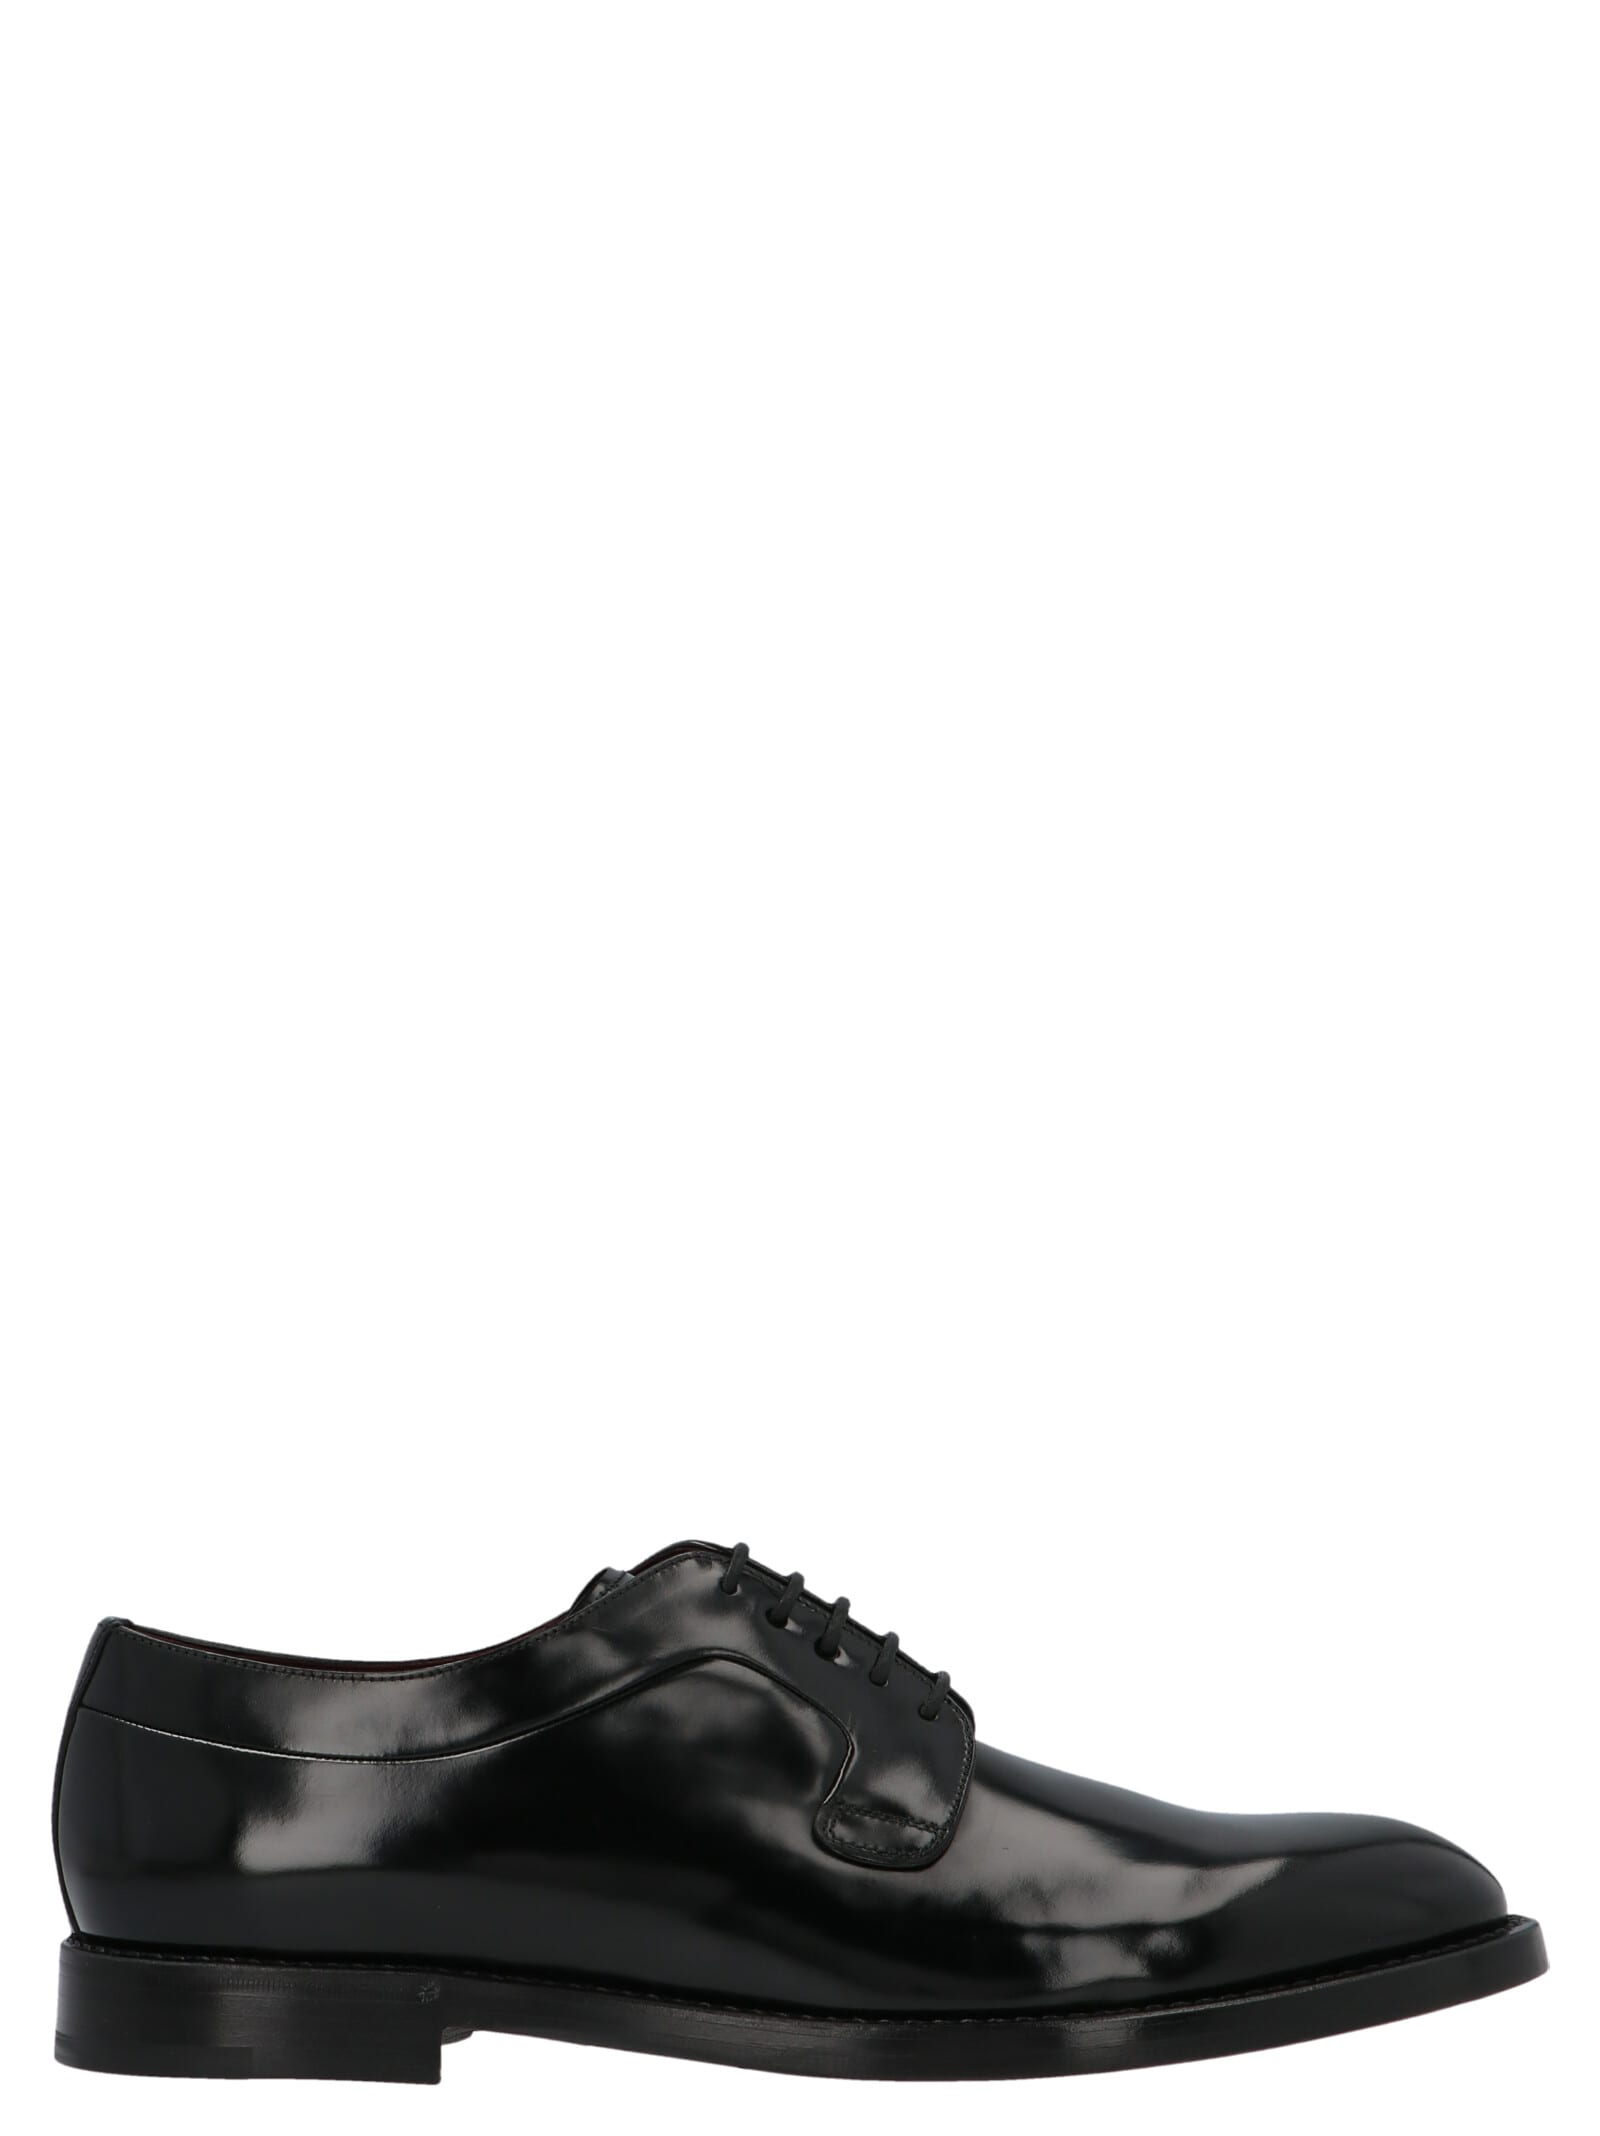 Dolce & Gabbana giotto Shoes